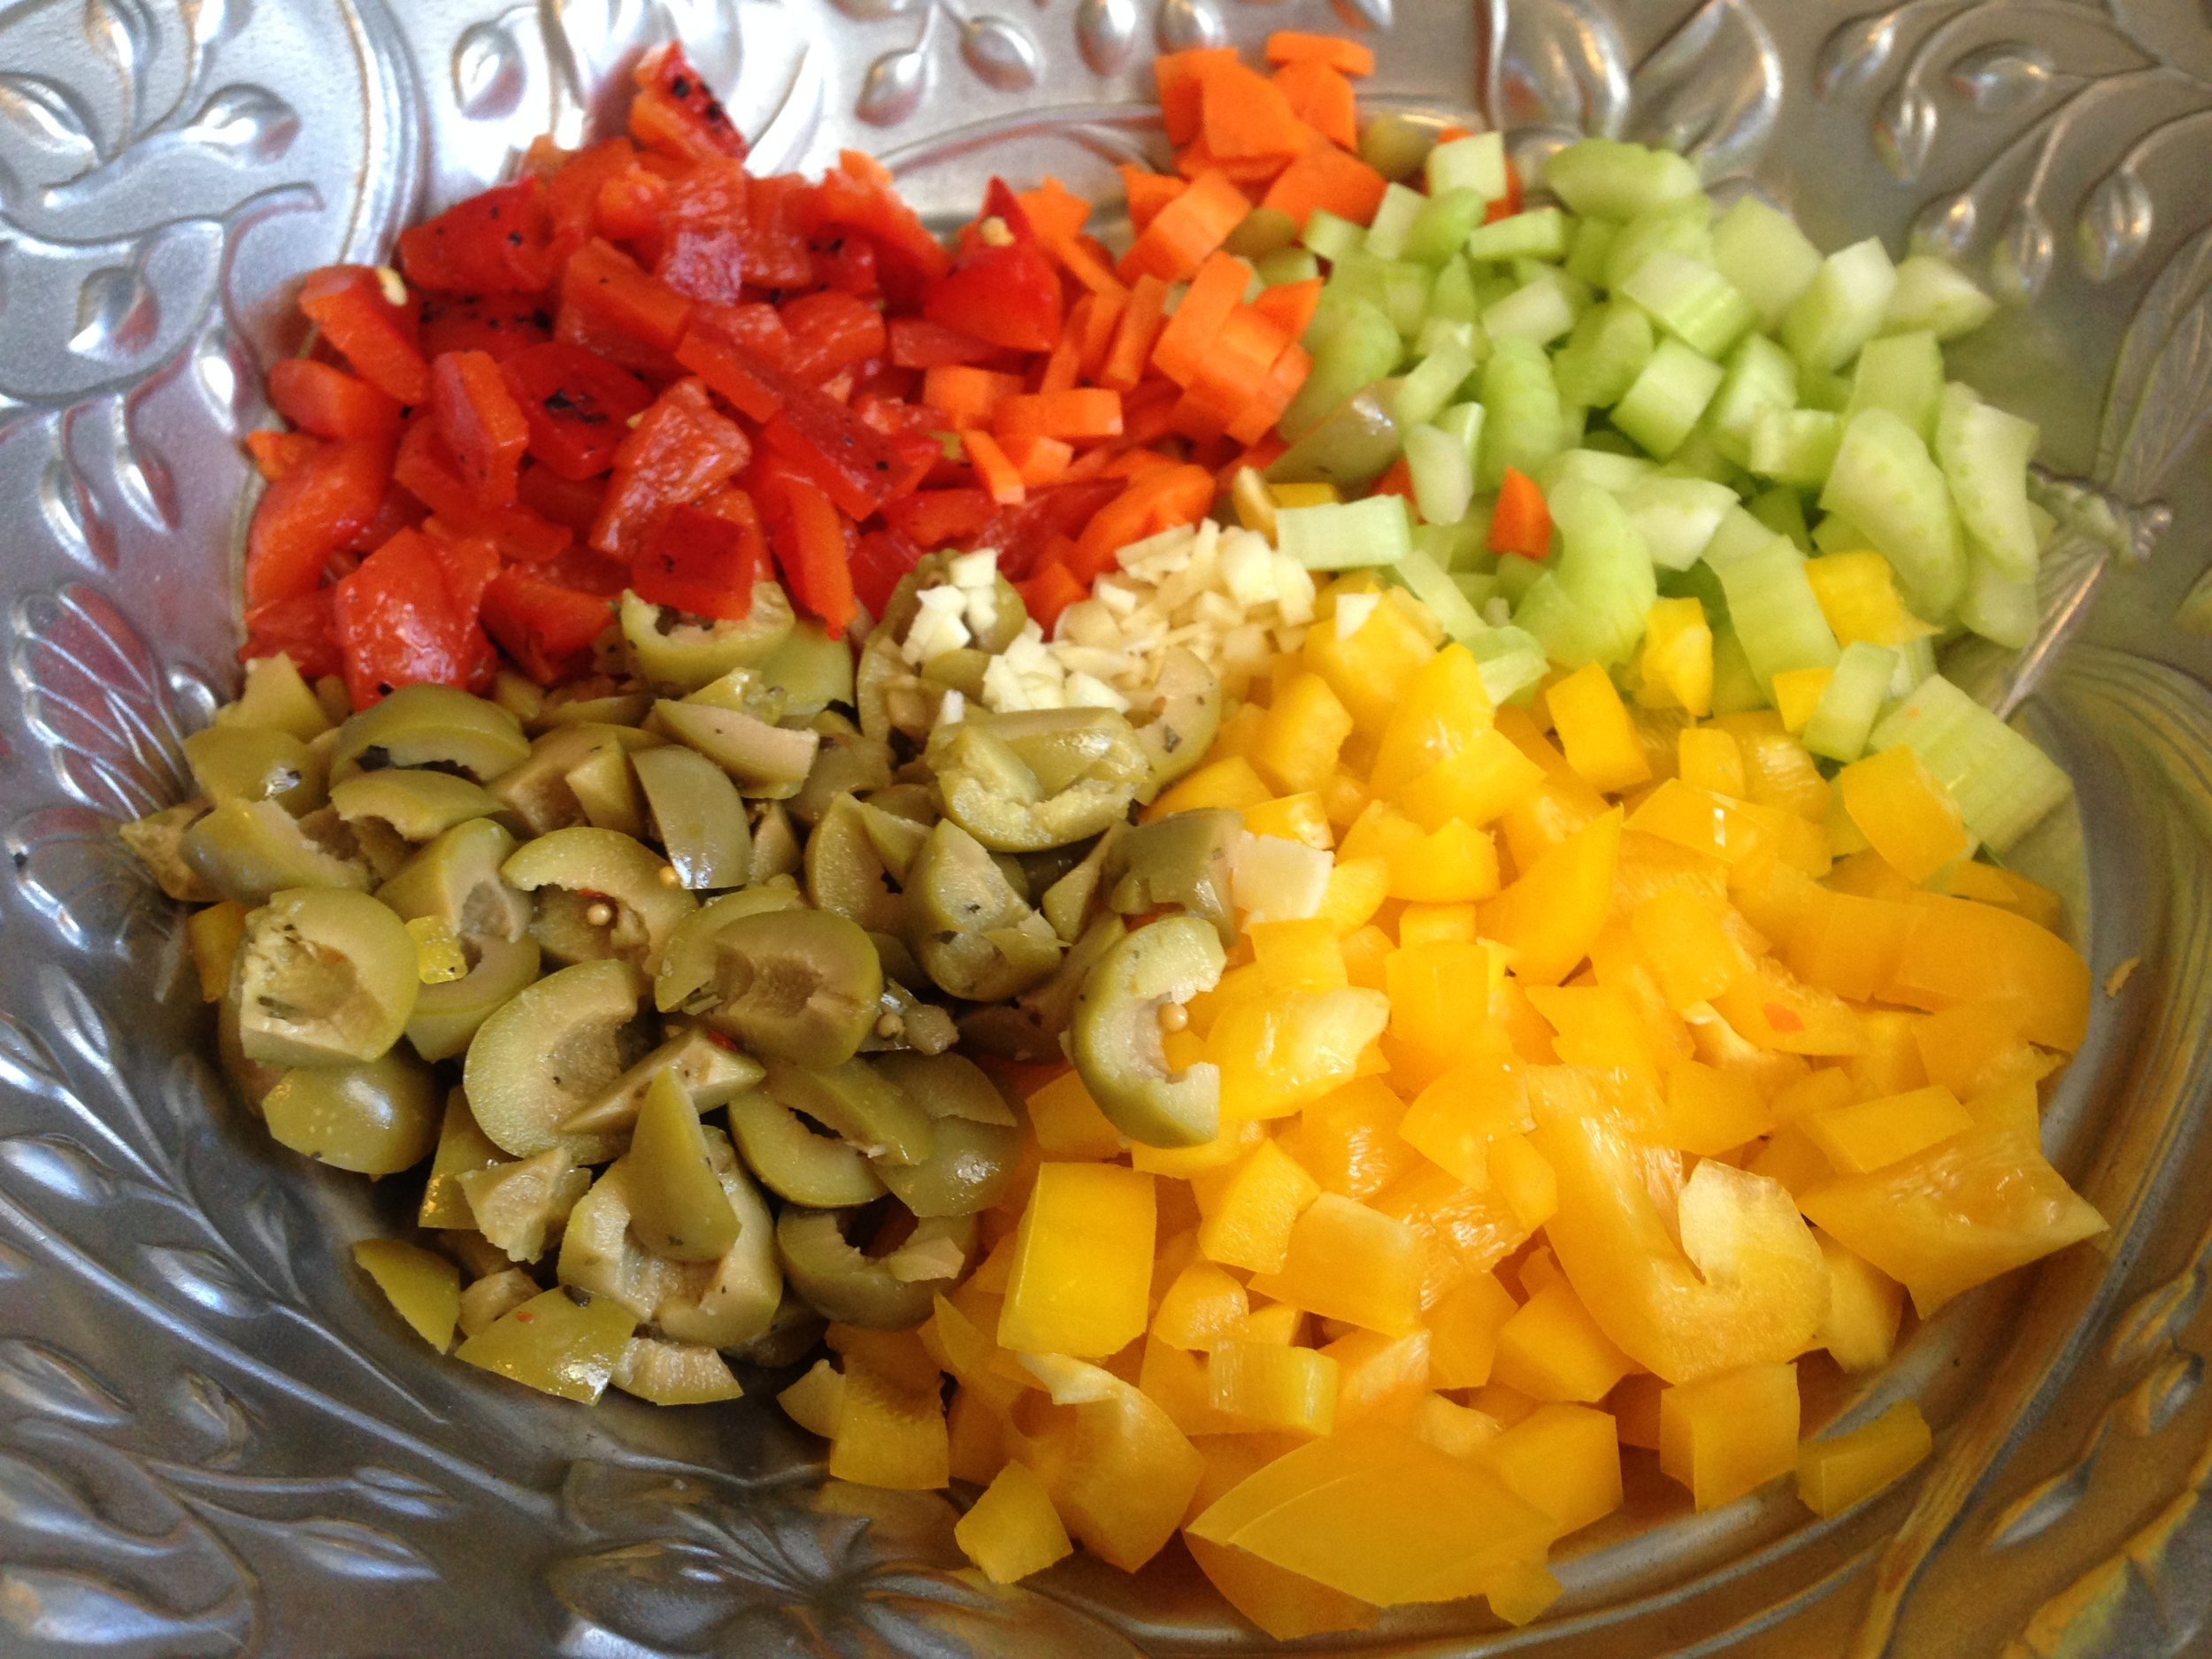 Veggies, olives, and garlic ready.